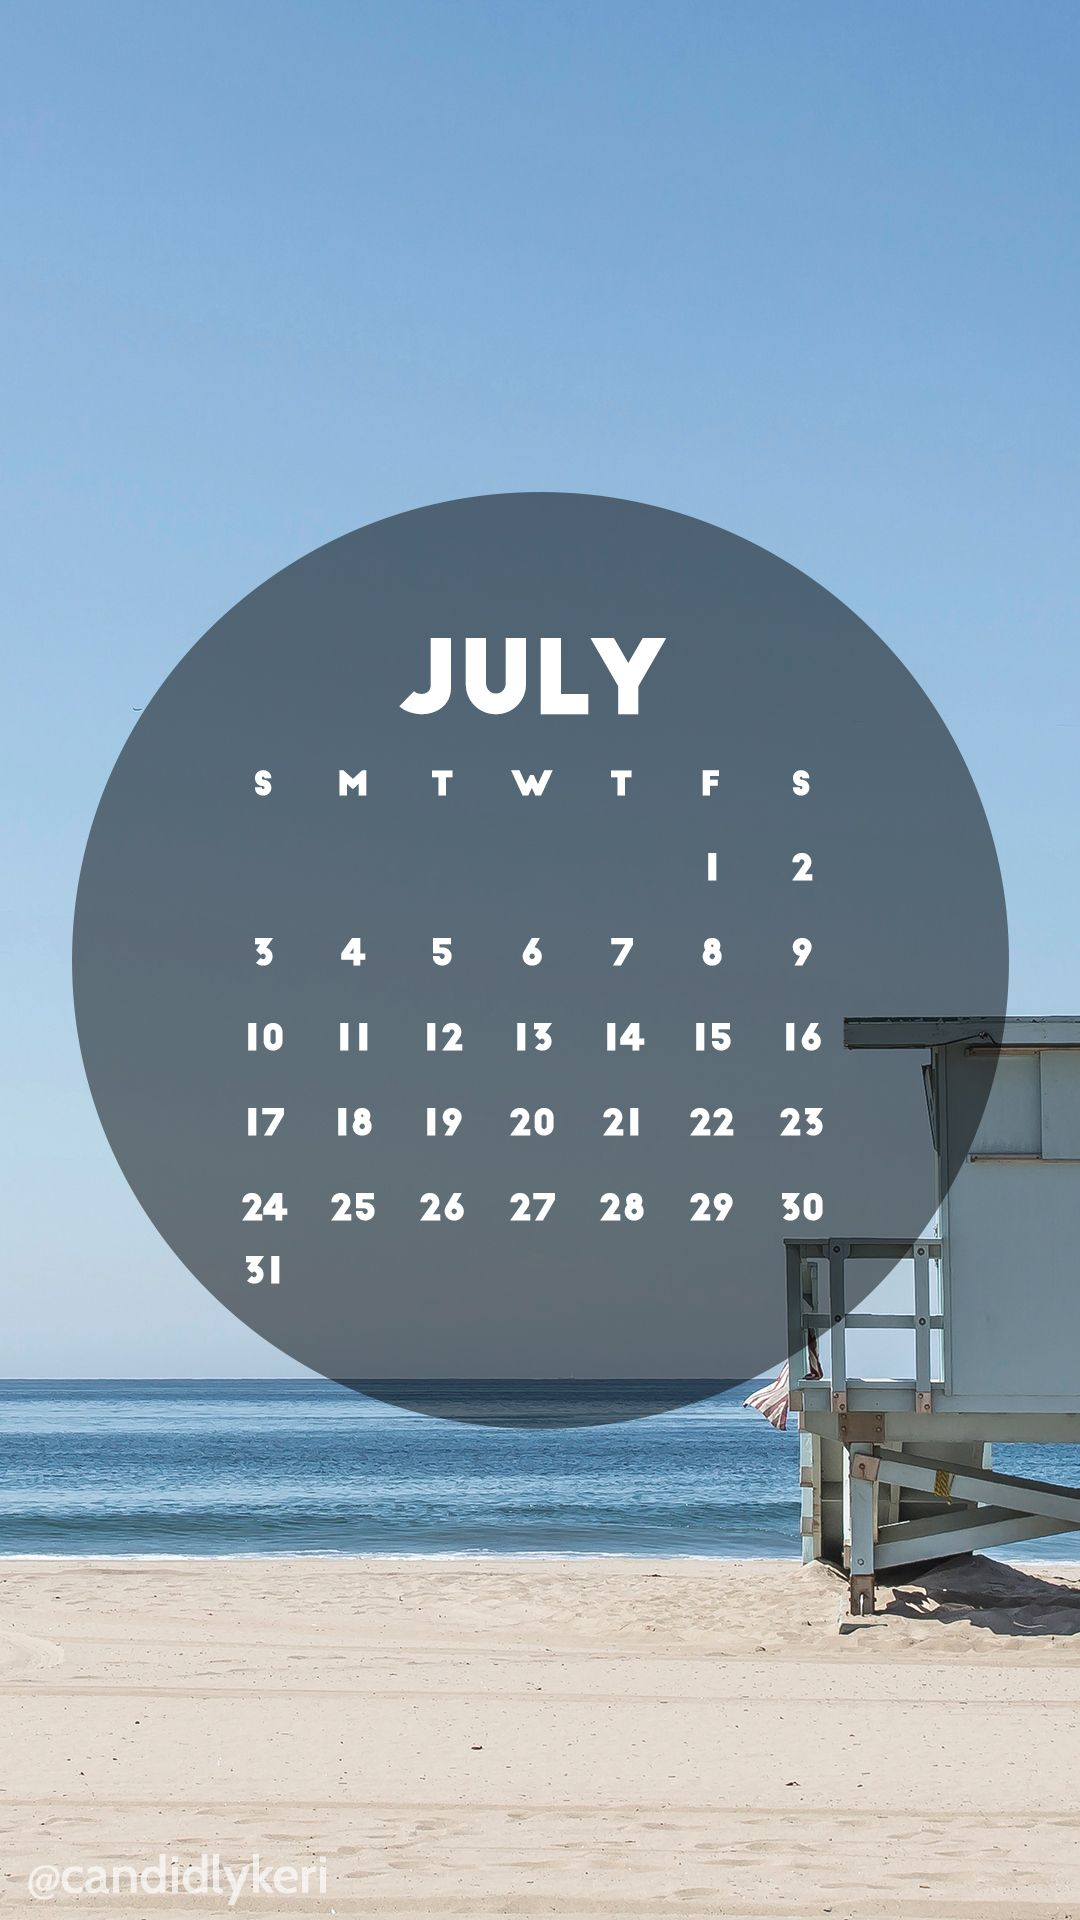 beach scene california lifeguard stand july 2016 calendar wallpaper free download for iphone android or desktop